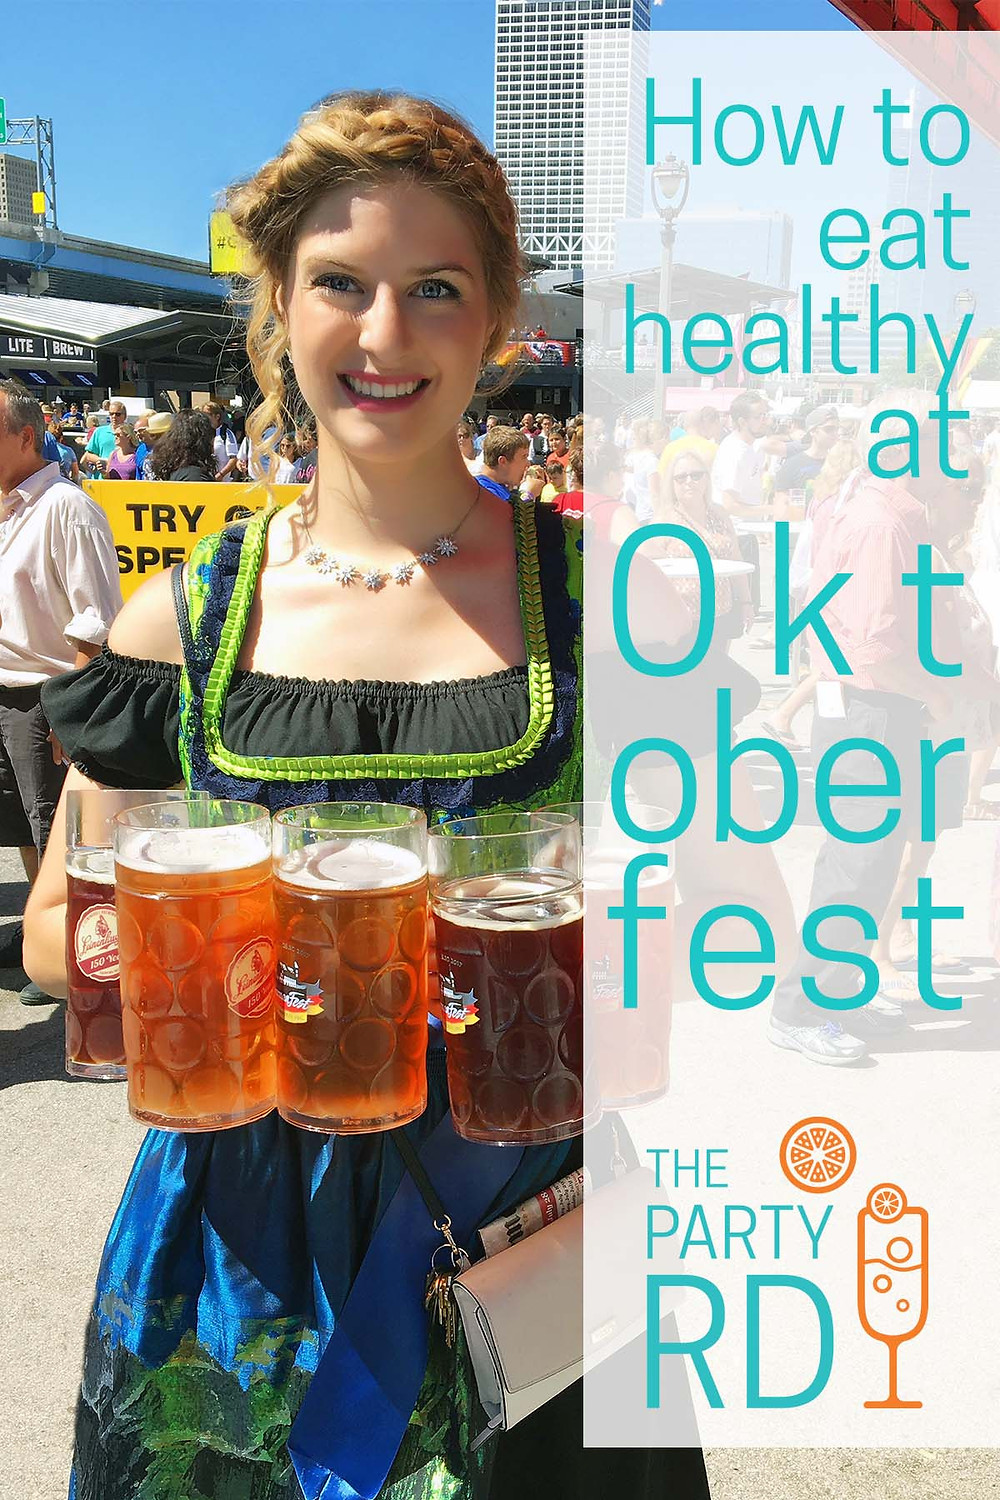 How to eat healthy at Oktoberfest